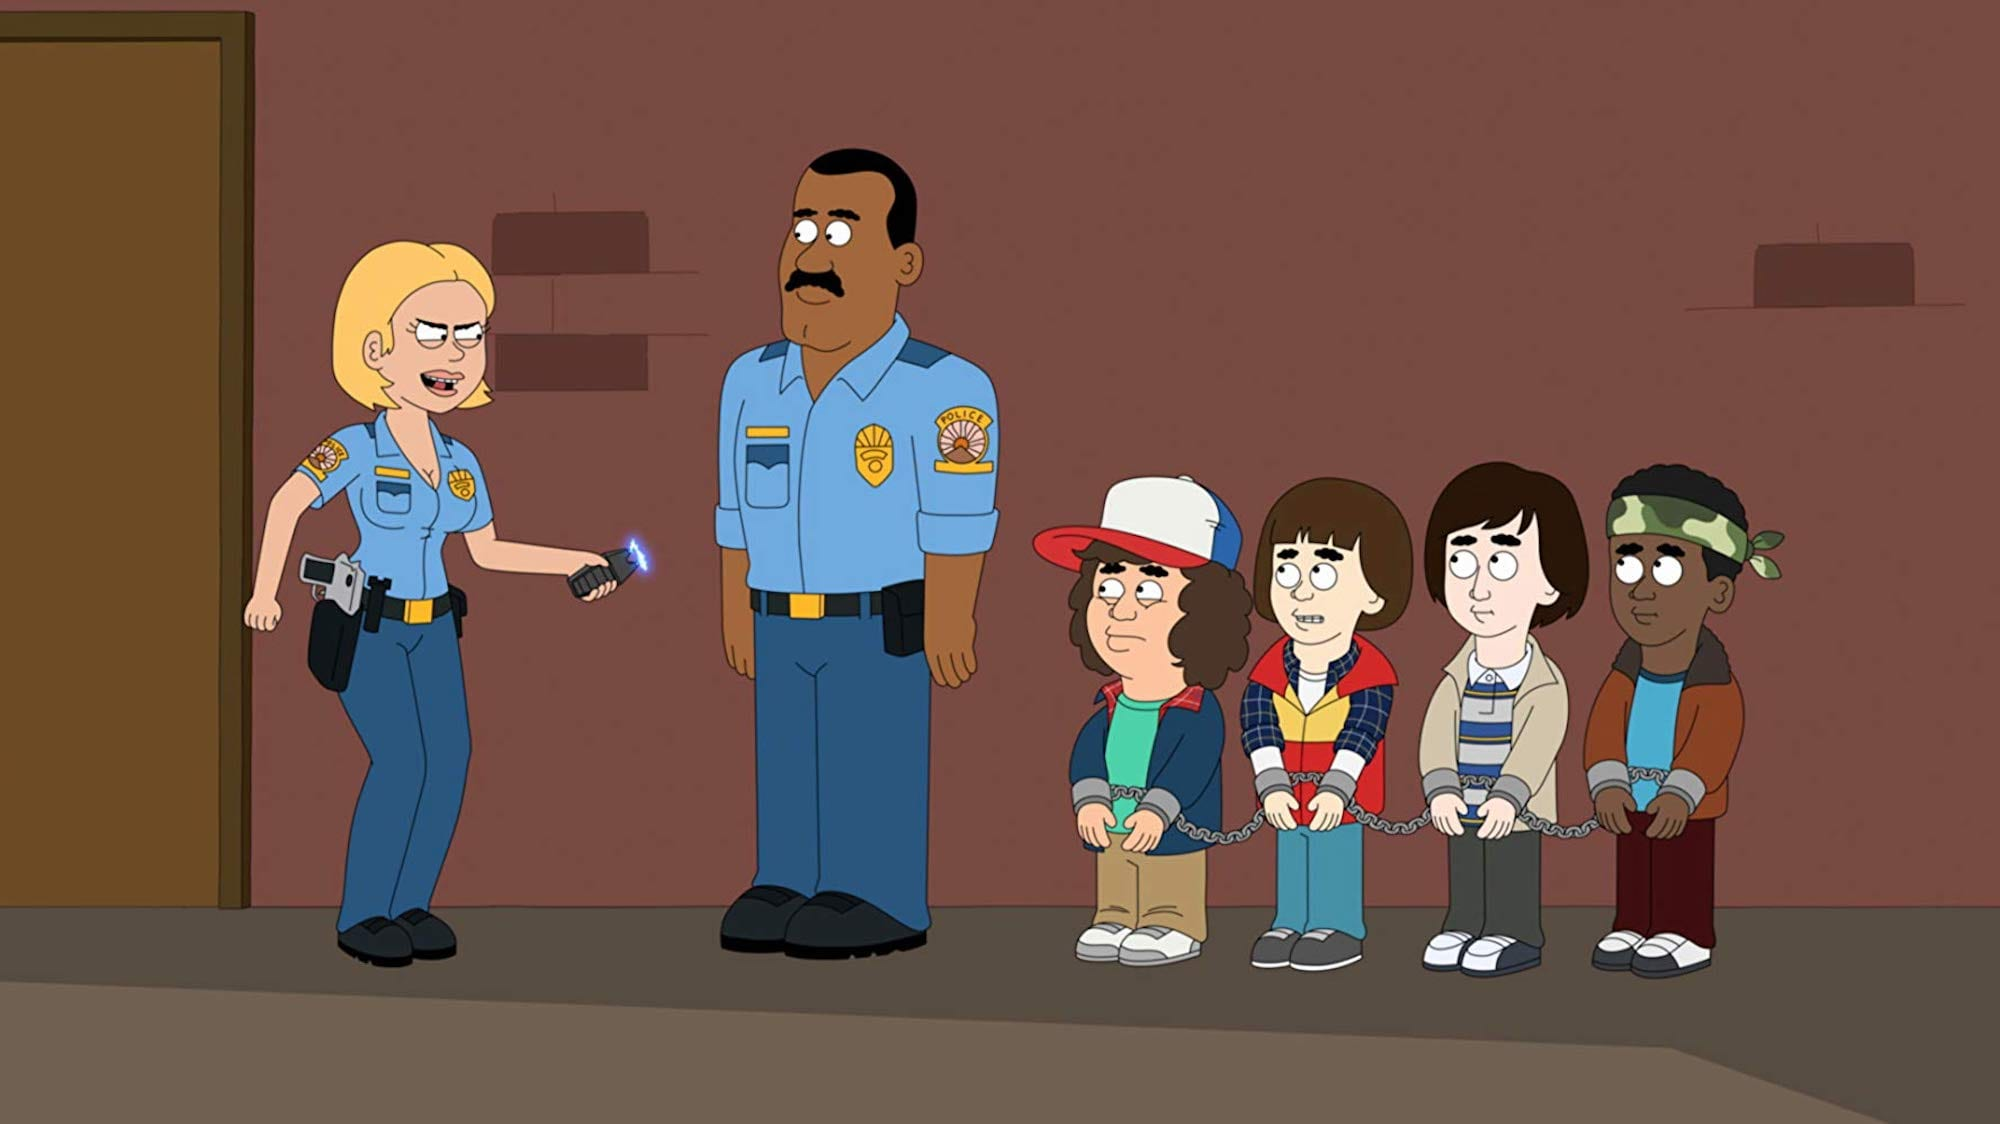 Netflix animated series 'Paradise PD' follows the worst first responders in a backwater, small-town police department.